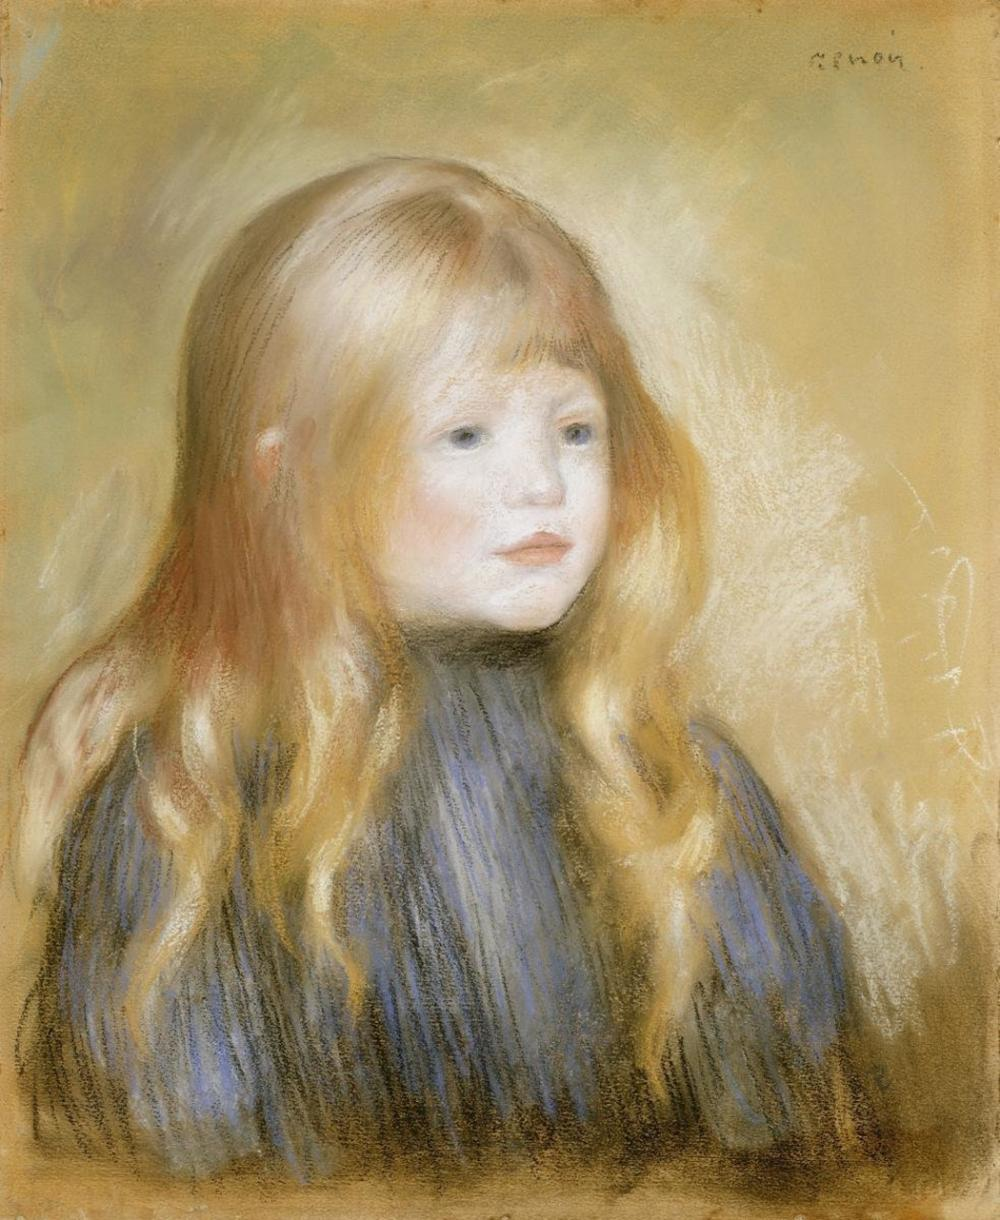 PIERRE-AUGUSTE RENOIR - THE HEAD OF A CHILD